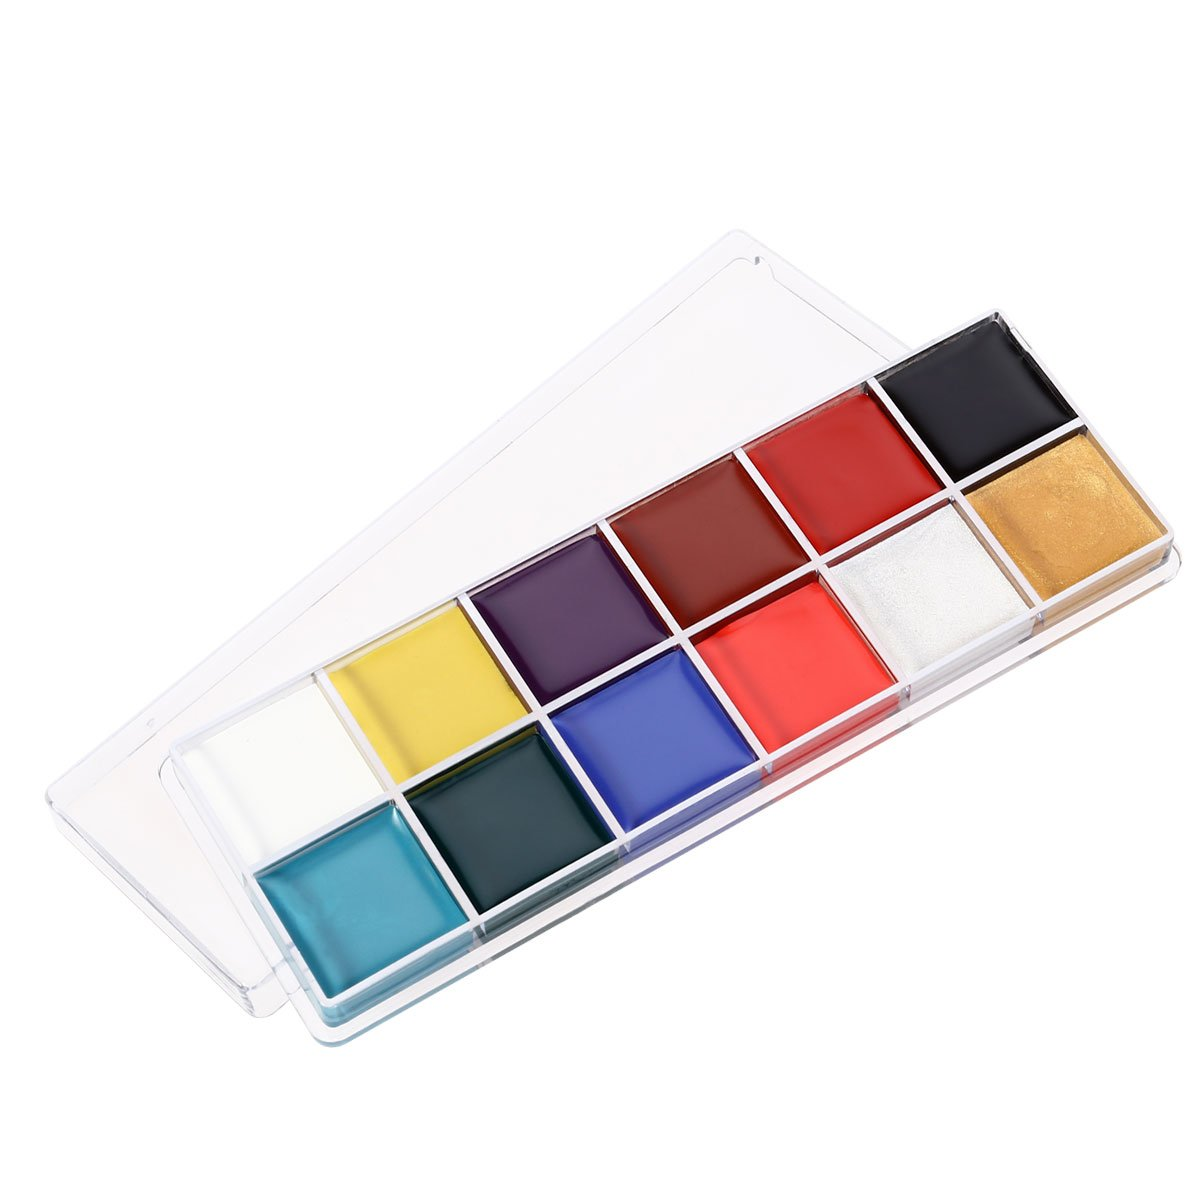 NUOLUX 12 en 1 Flash Visage Corps Peinture Huile Art Maquillage Noël Déguisements Party Palette